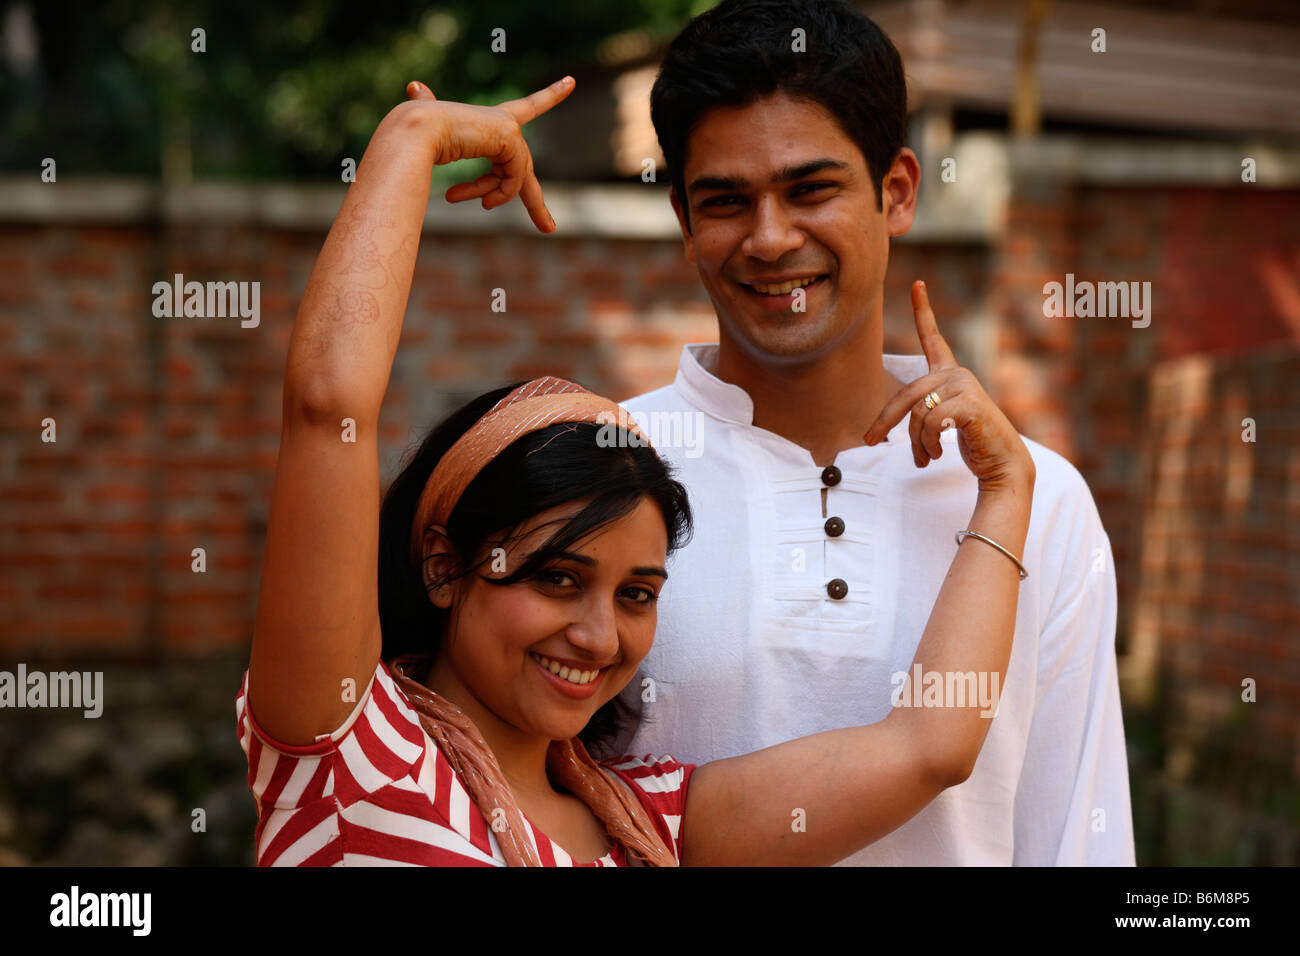 Indian boy and girl Photo Stock